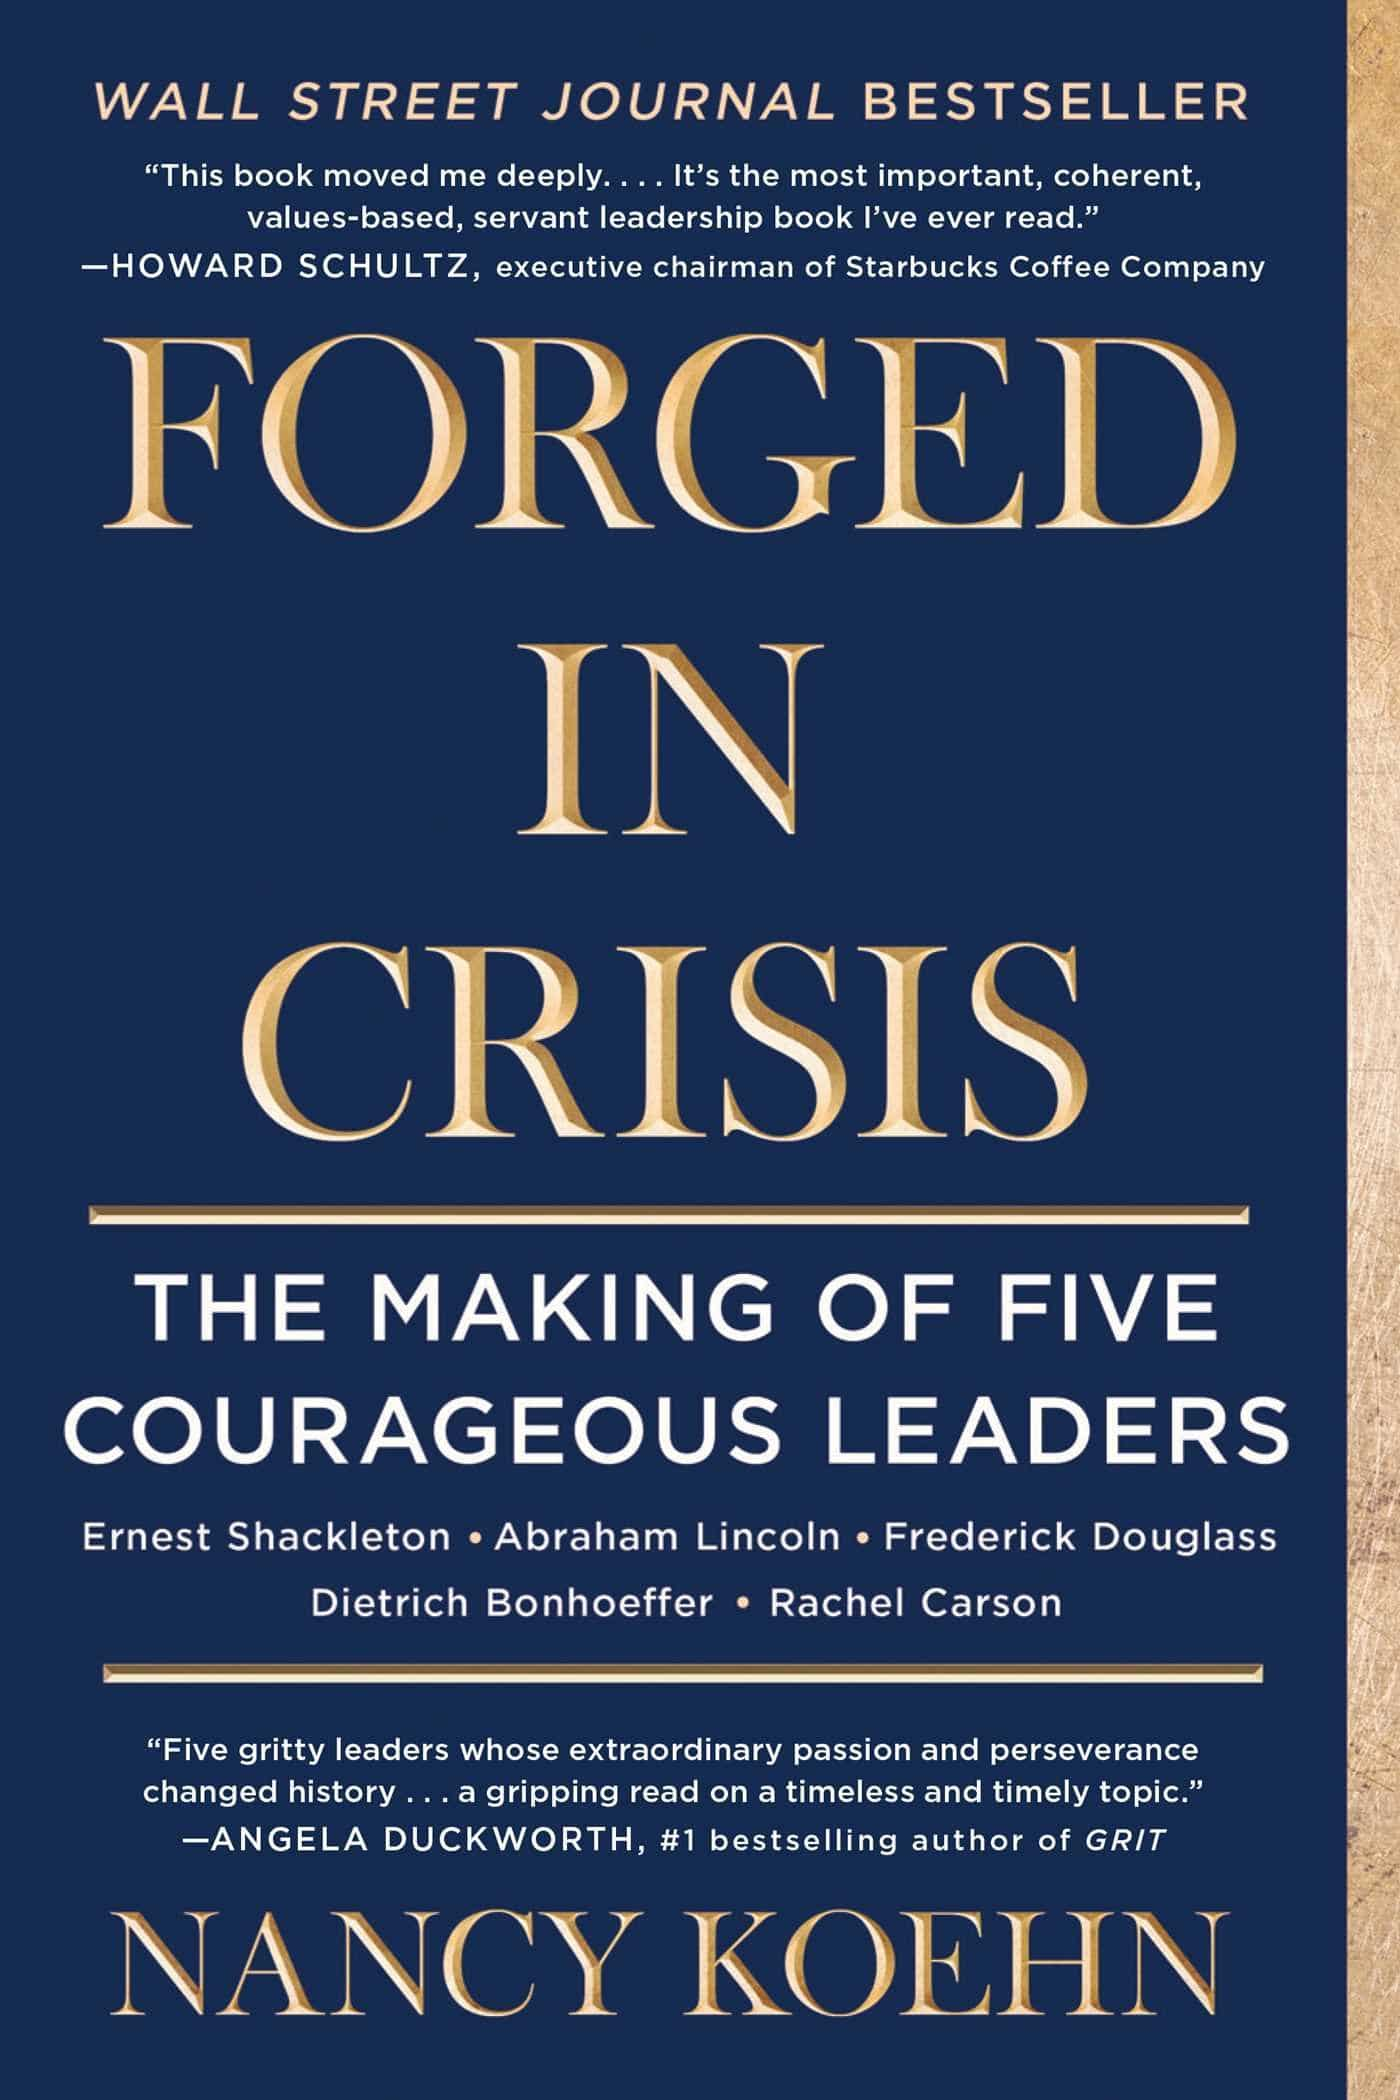 Forged in Crisis: The Making of Five Courageous Leaders by Nancy Koehn (2018)